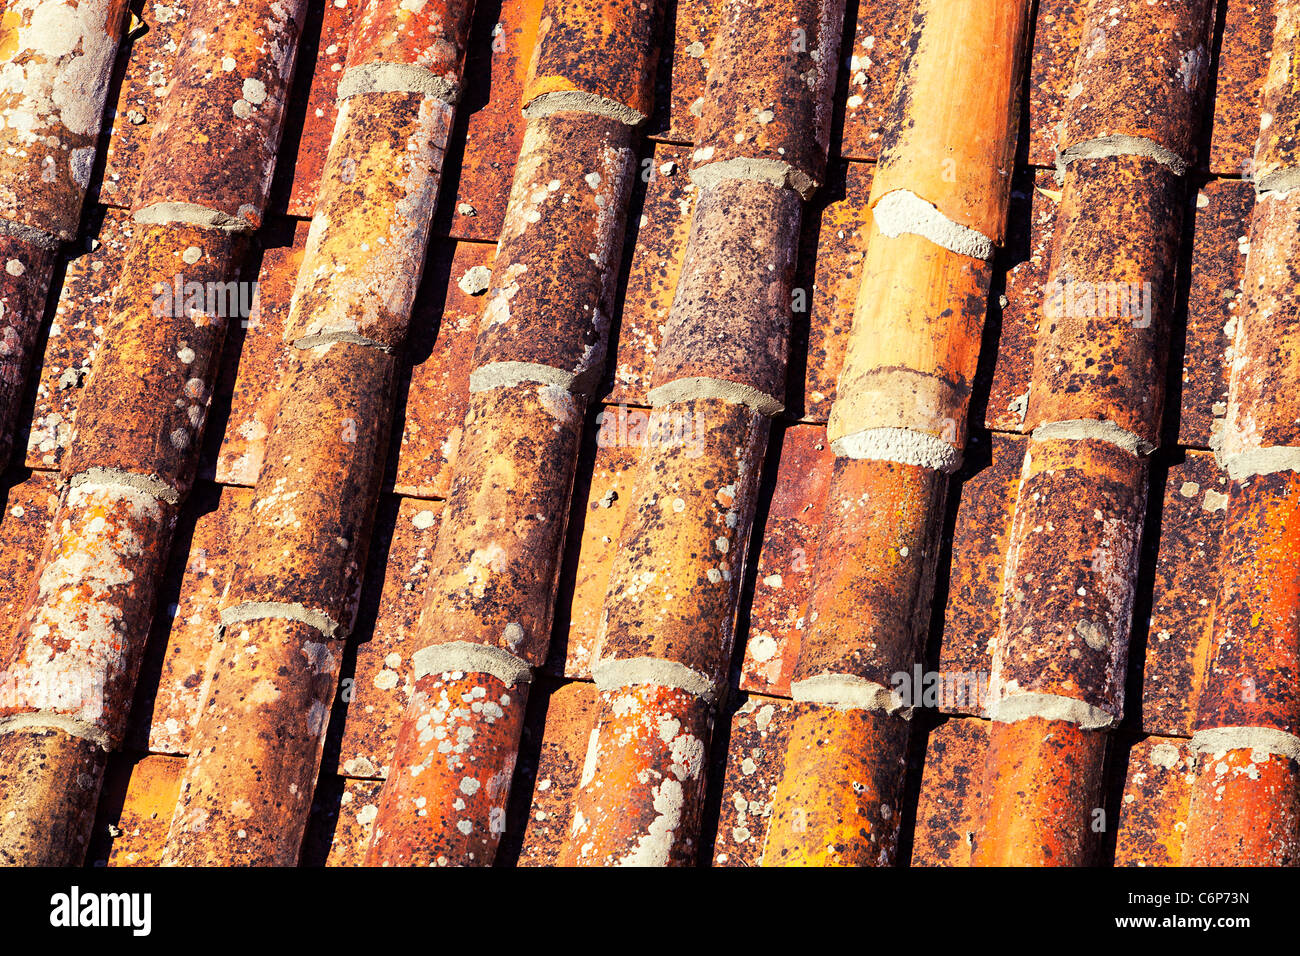 Close up of old, cylindrical red clay roof tiles on property. Stock Photo